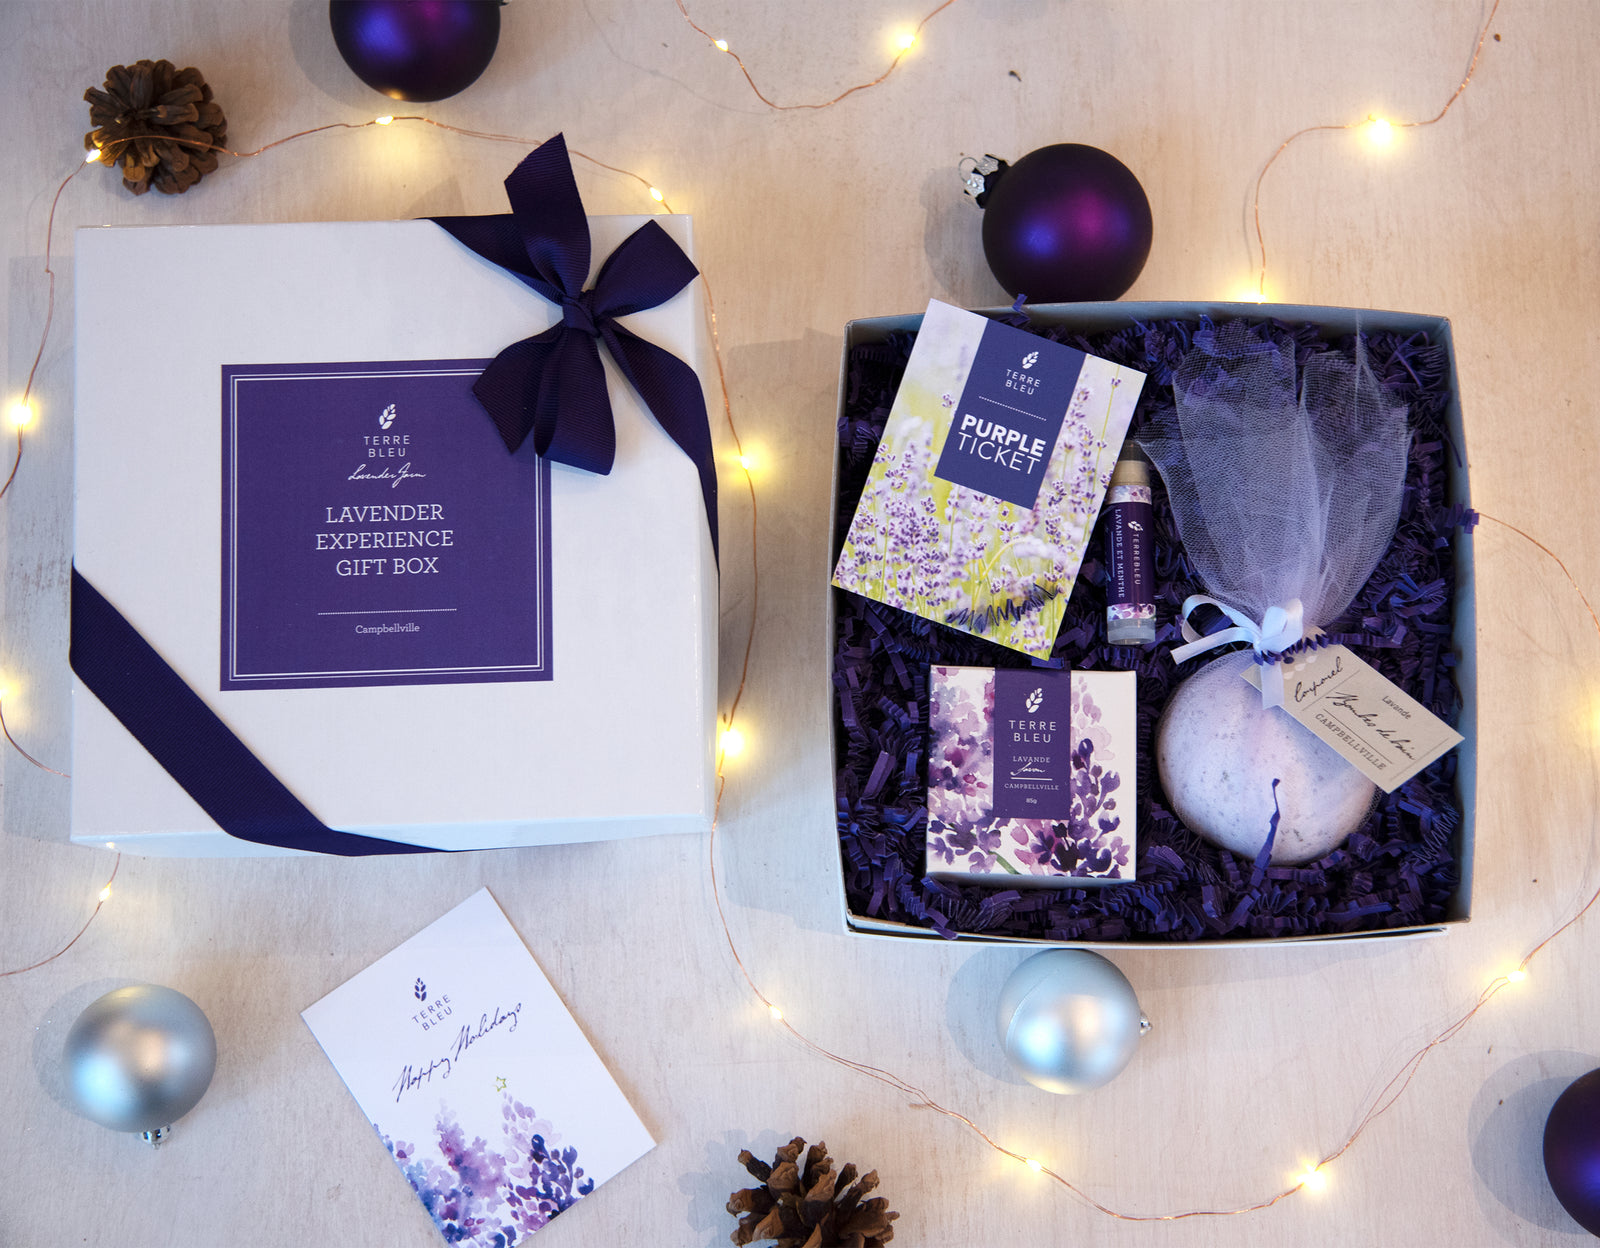 Lavender Experience Gift Box